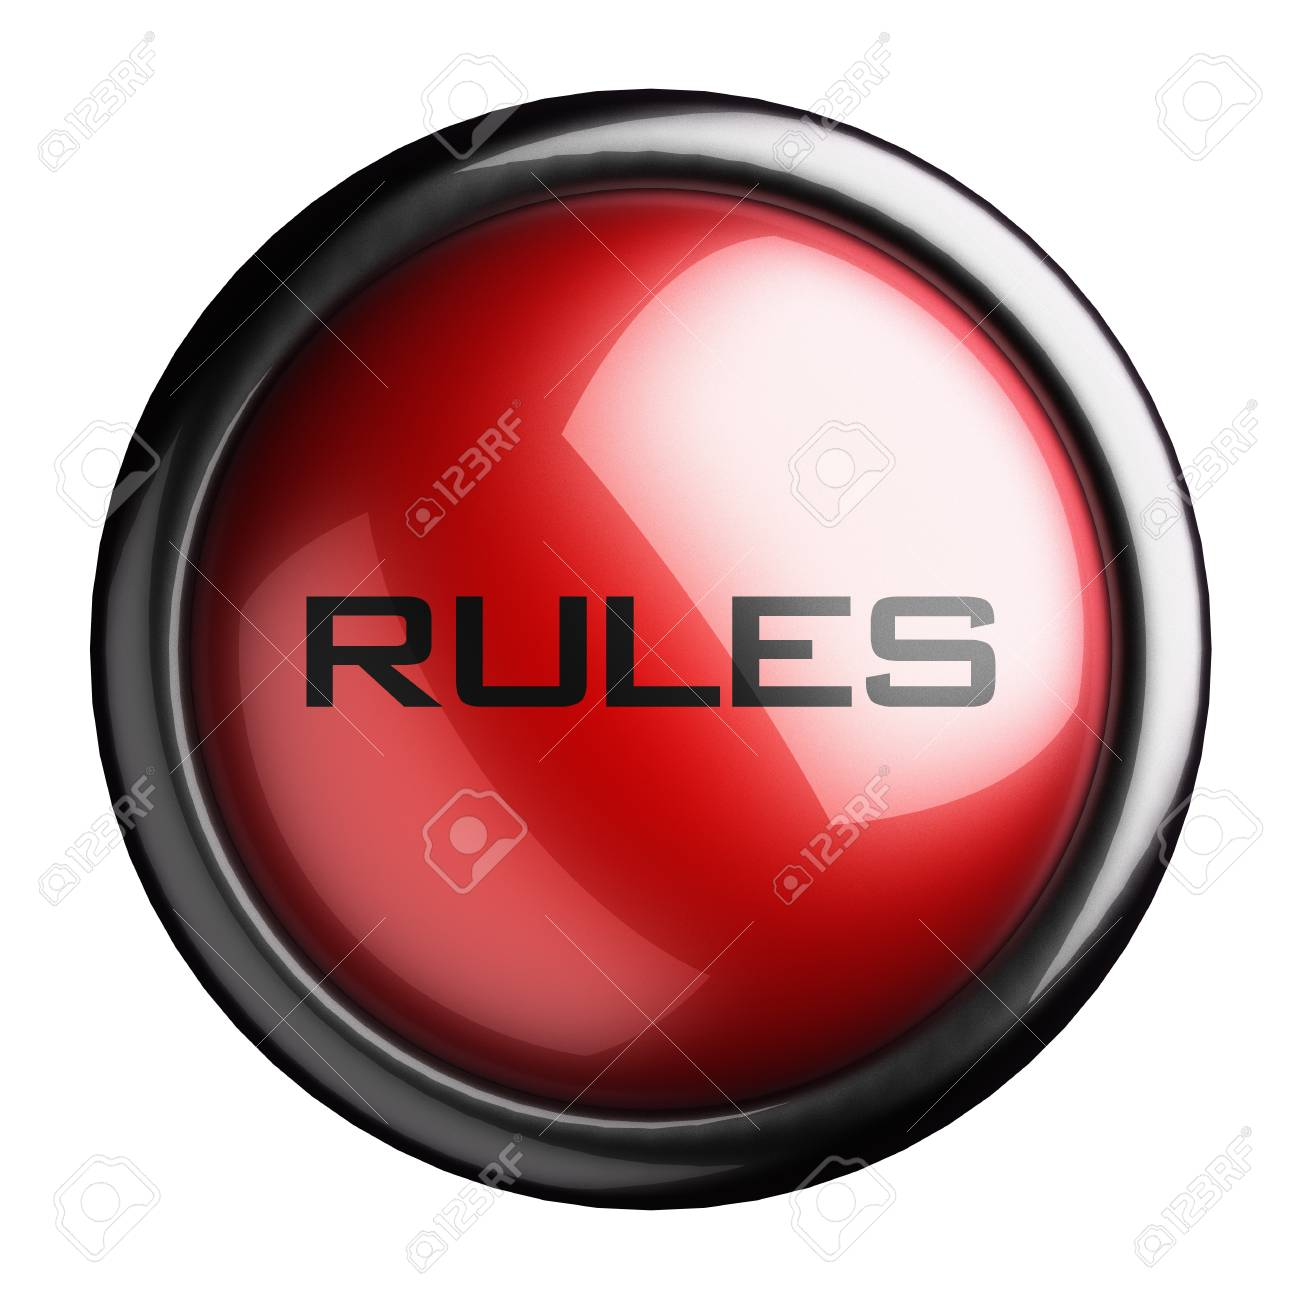 Word on the button Stock Photo - 15617395